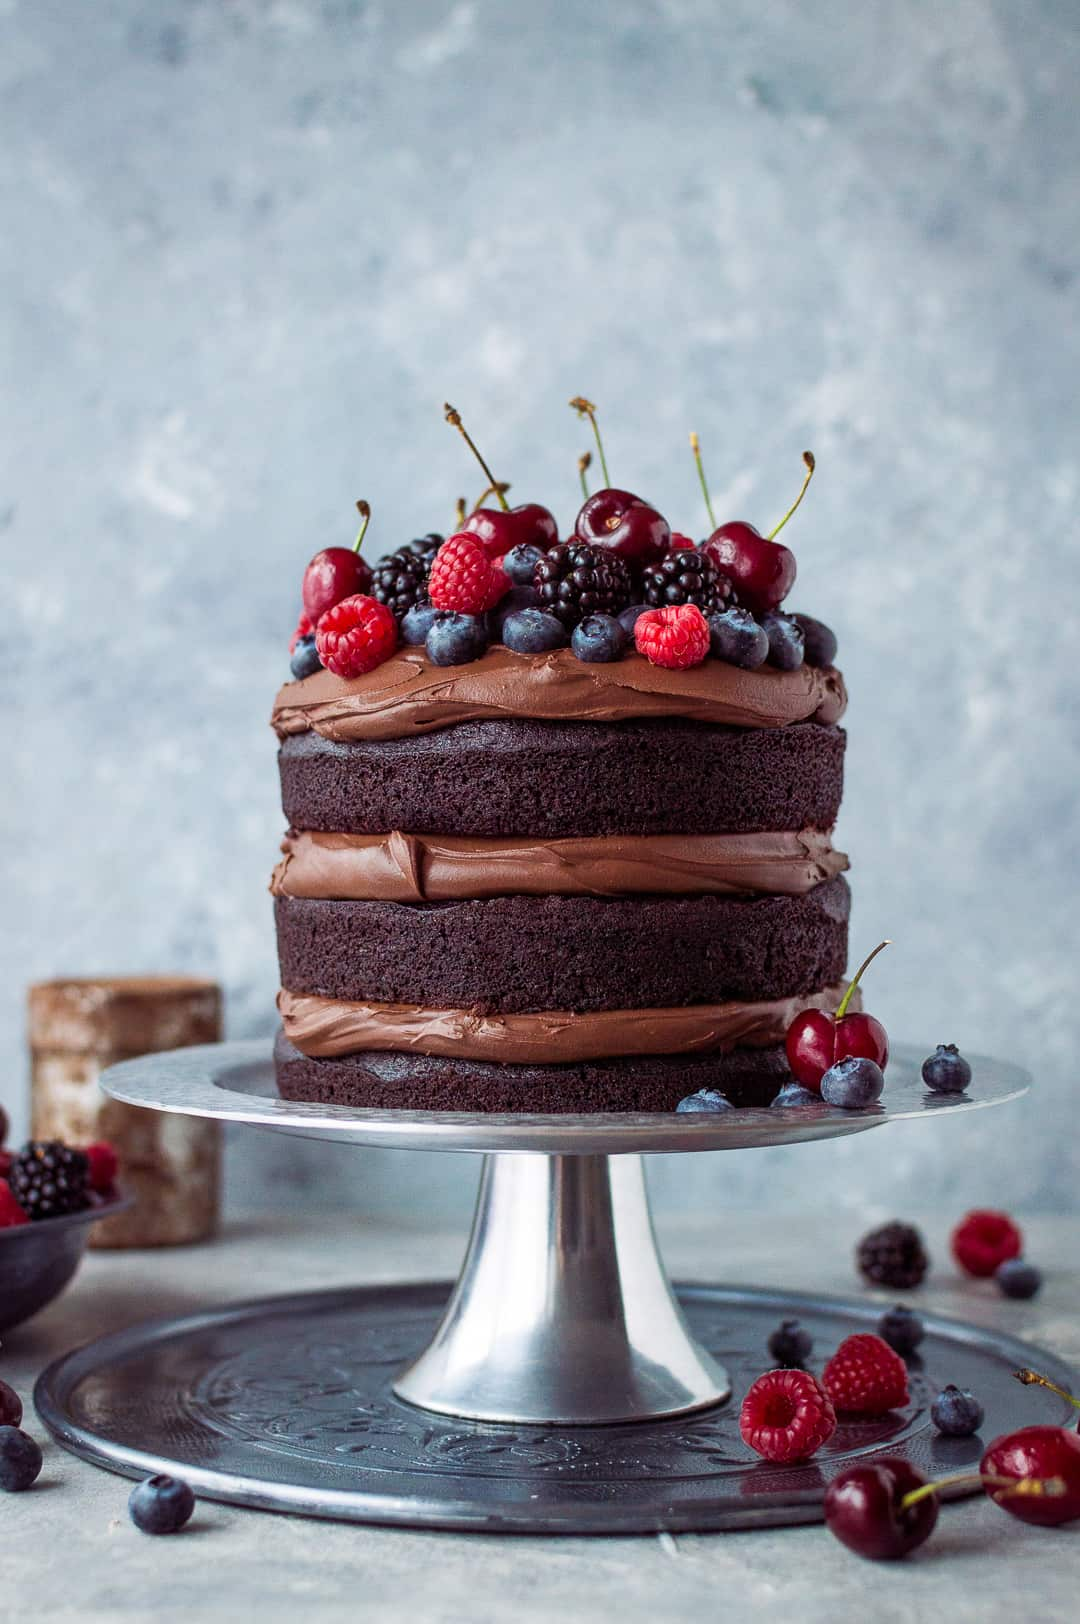 Vegan chocolate fudge cake with coconut milk ganache and fresh berries on a silver cake stand.